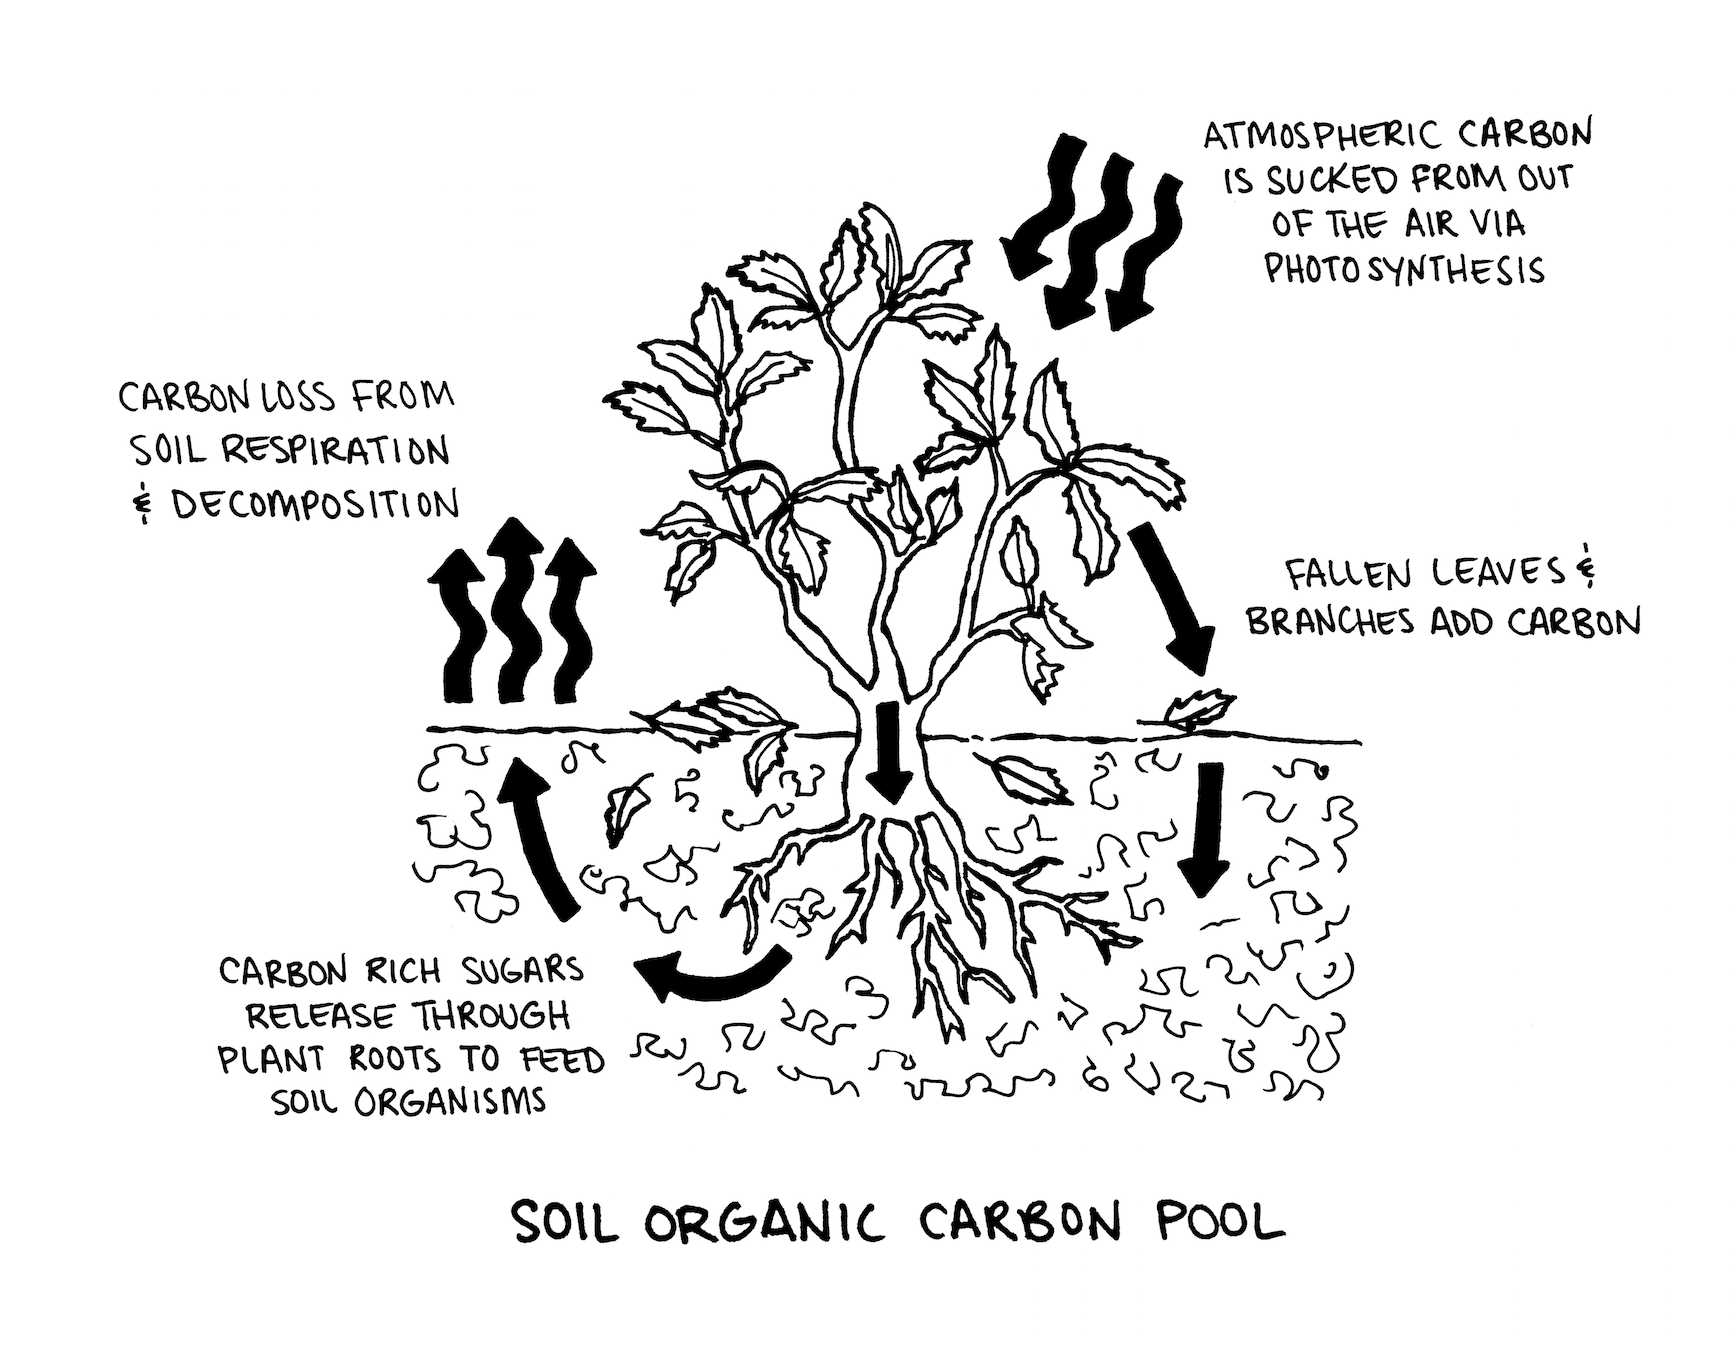 The soil holds twice as much carbon as the atmosphere. Most of the carbon stored underground comes from plants through photosynthesis. As plants flourish, they produce carbon-rich sugars and carbohydrates that travel to the roots and trap carbon below our feet.  Illustrator:     Krishna Chavda